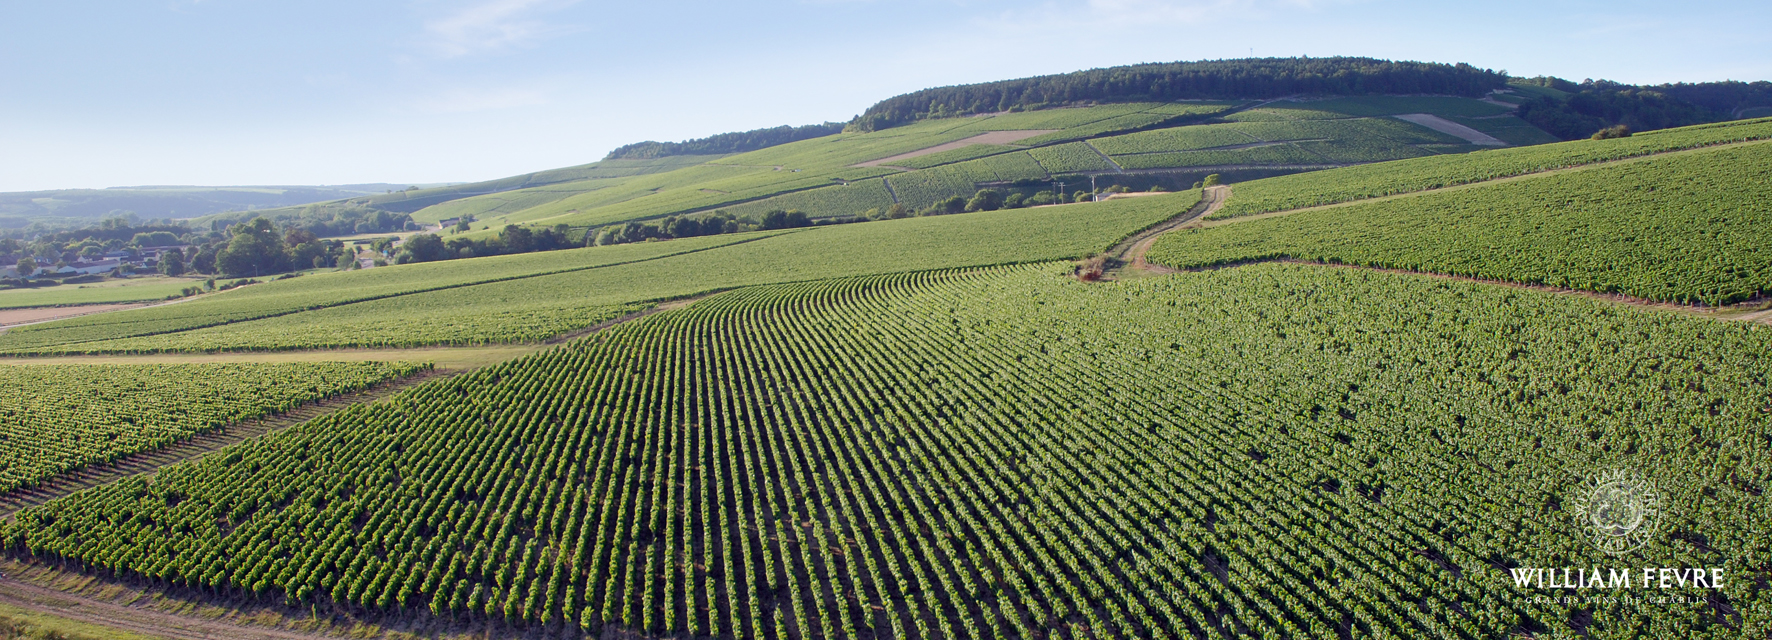 William Fèvre vineyard